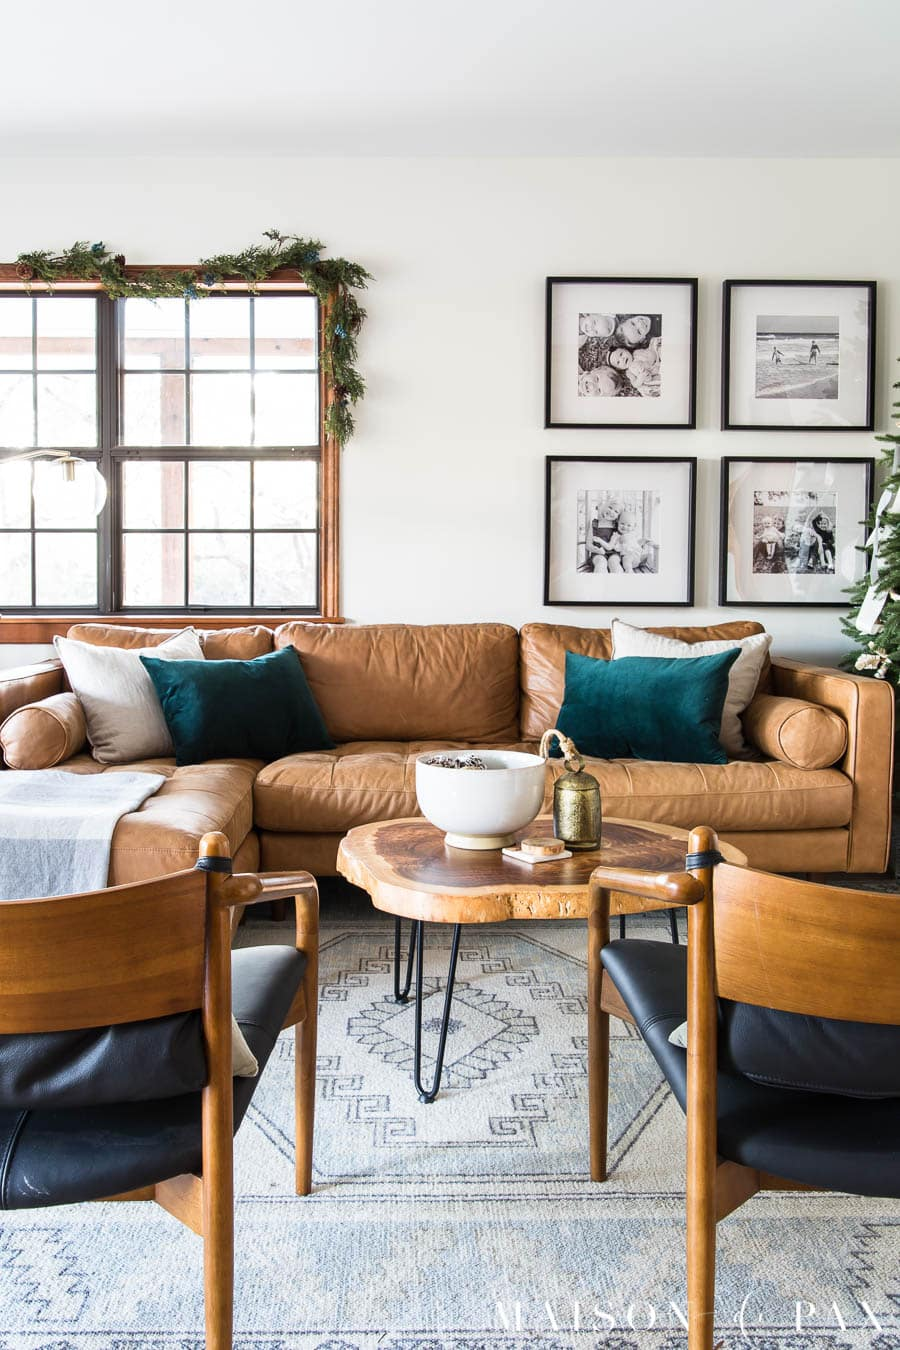 tan leather sofa with green velvet pillows and garland for holiday decorations | Maison de Pax